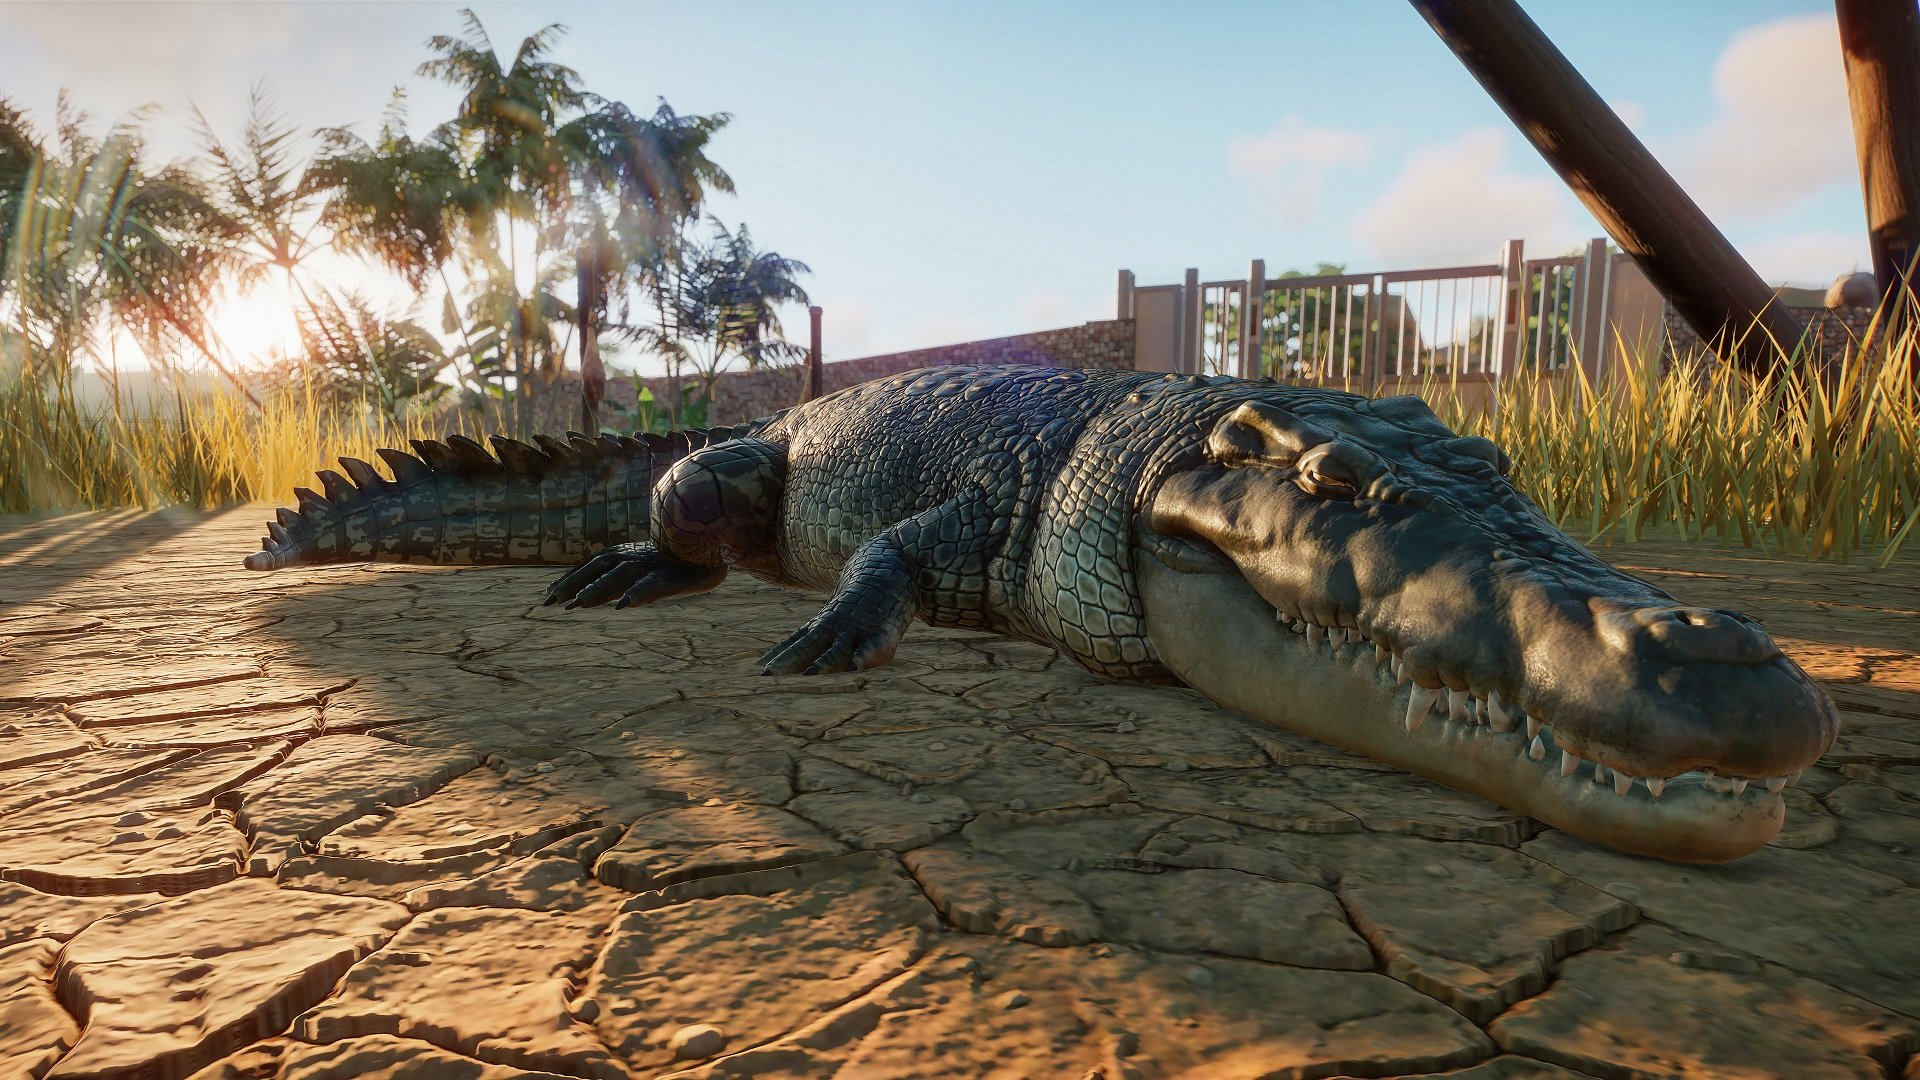 planet zoo alligator wallpaper 68850